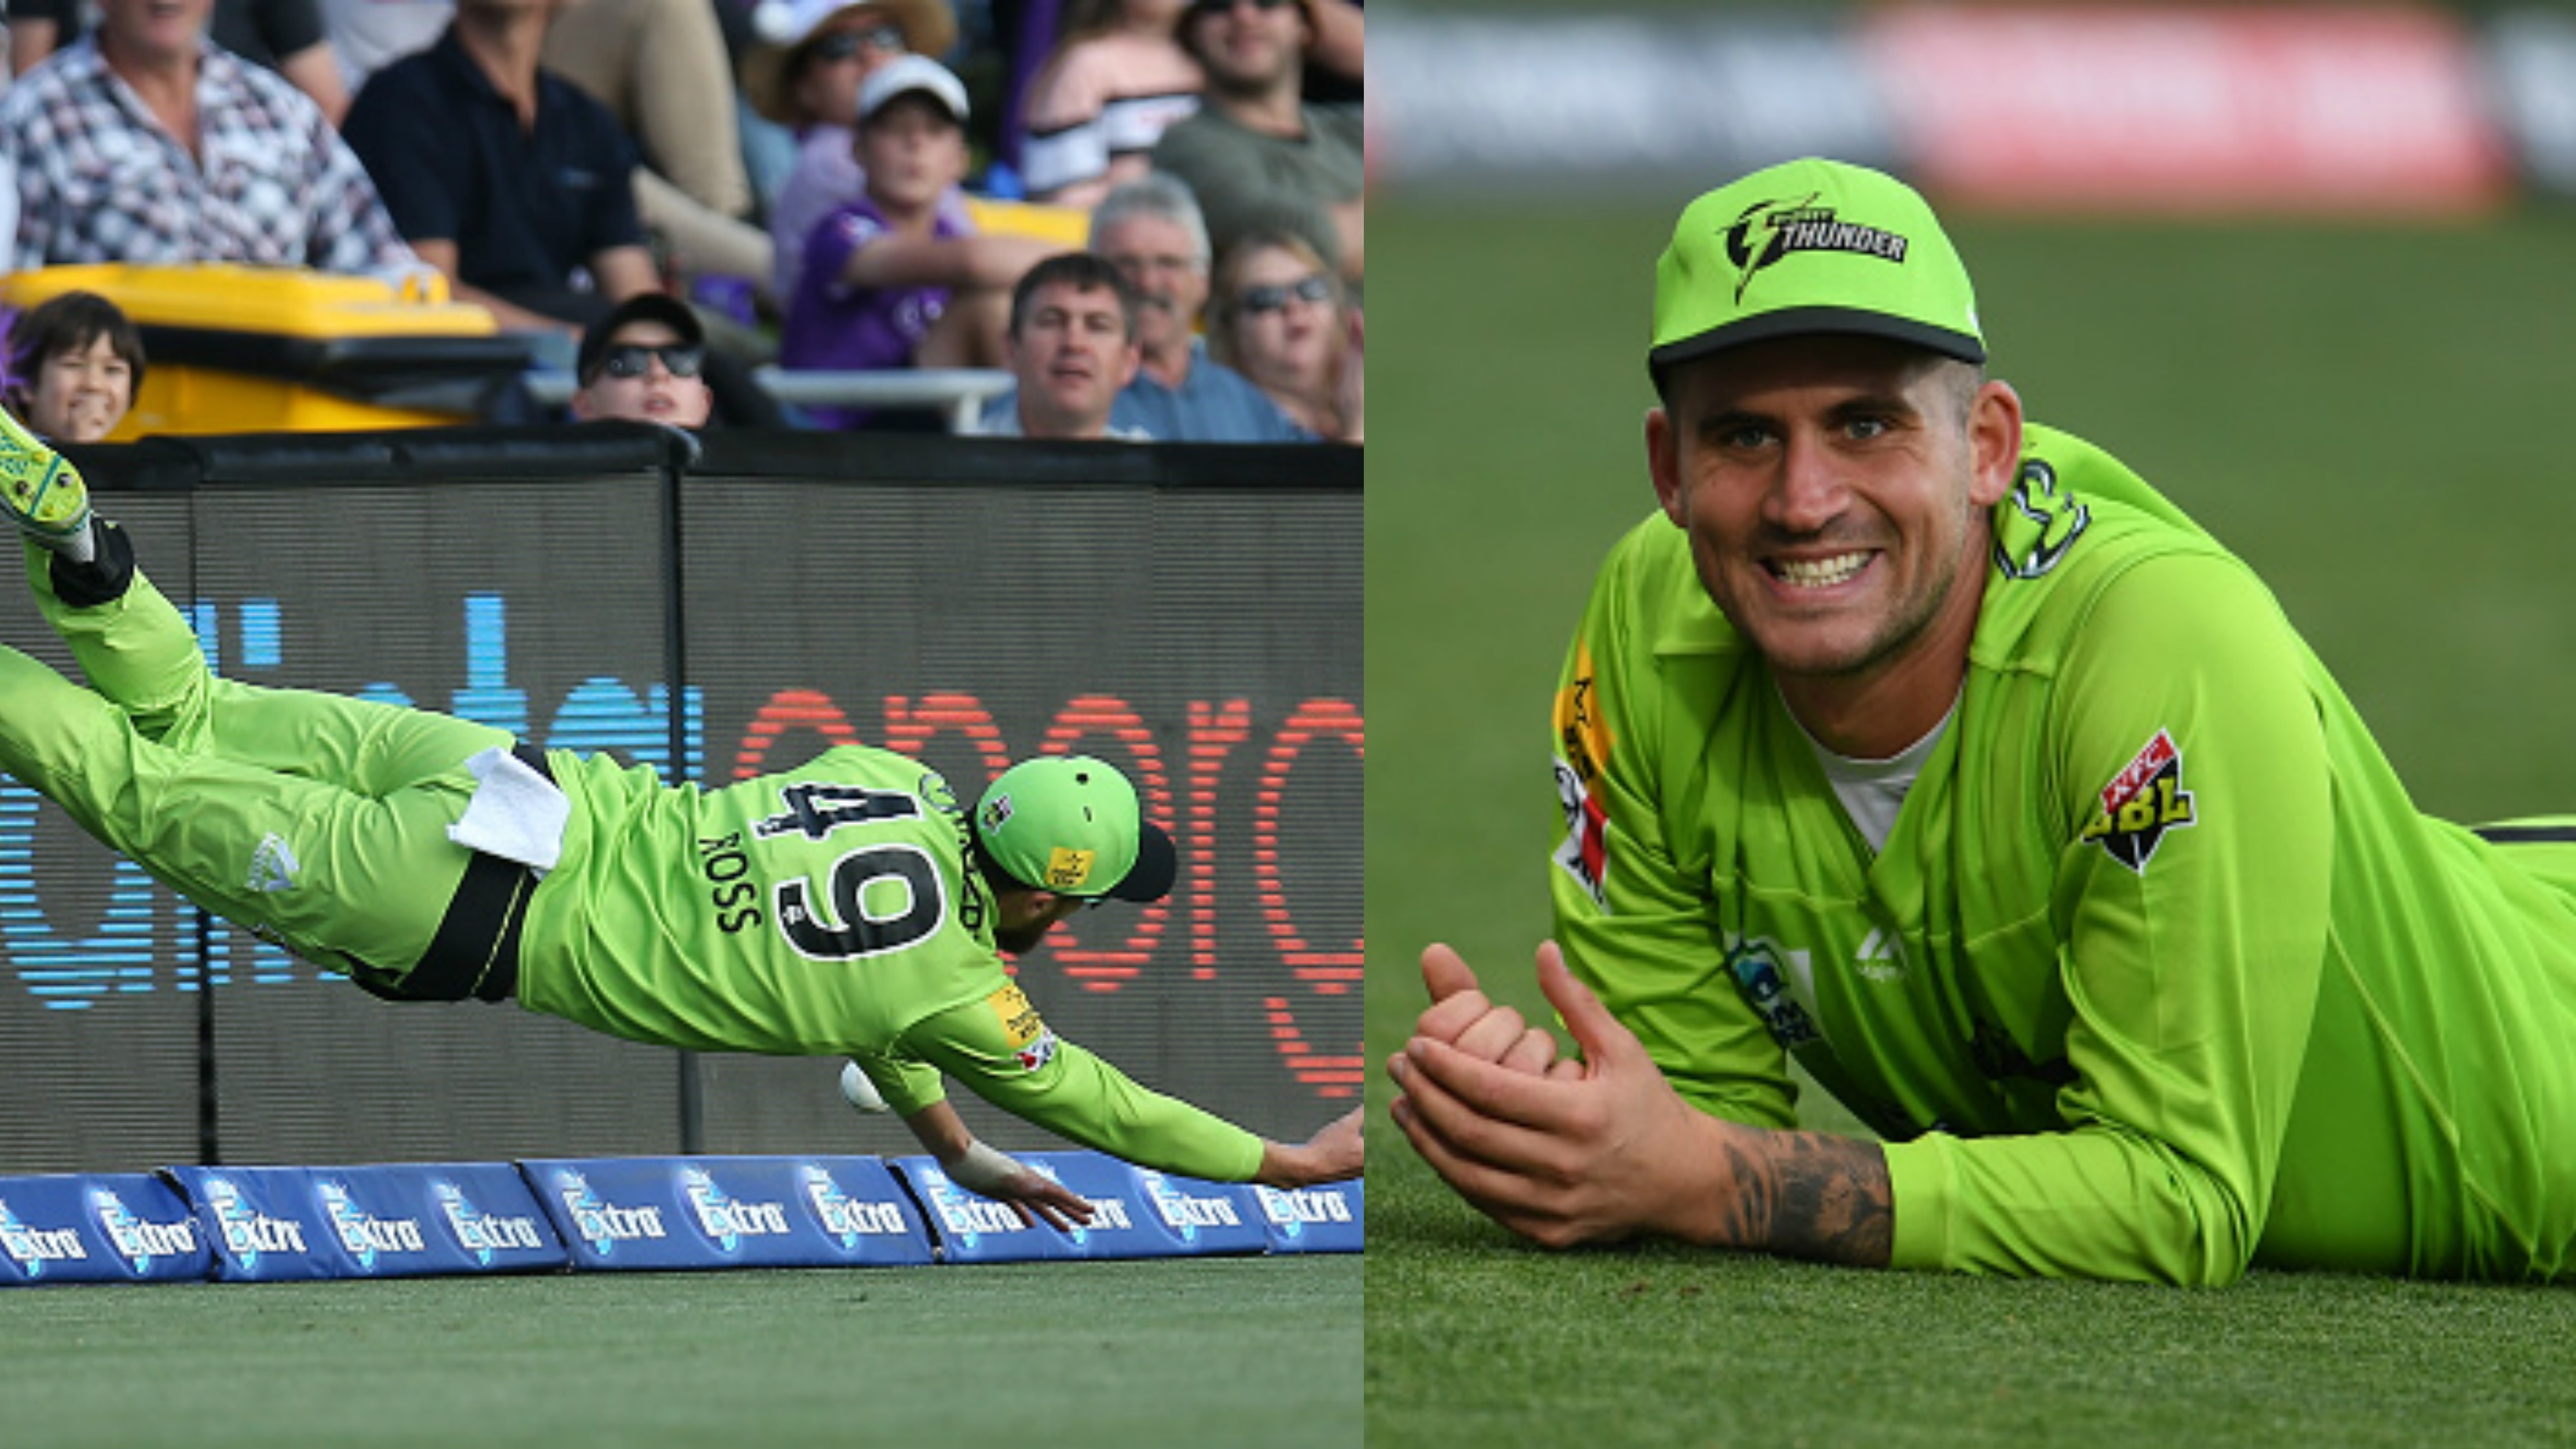 BBL 09: WATCH - Ross and Hales' incredible fielding efforts for Sydney Thunder elates the crowd